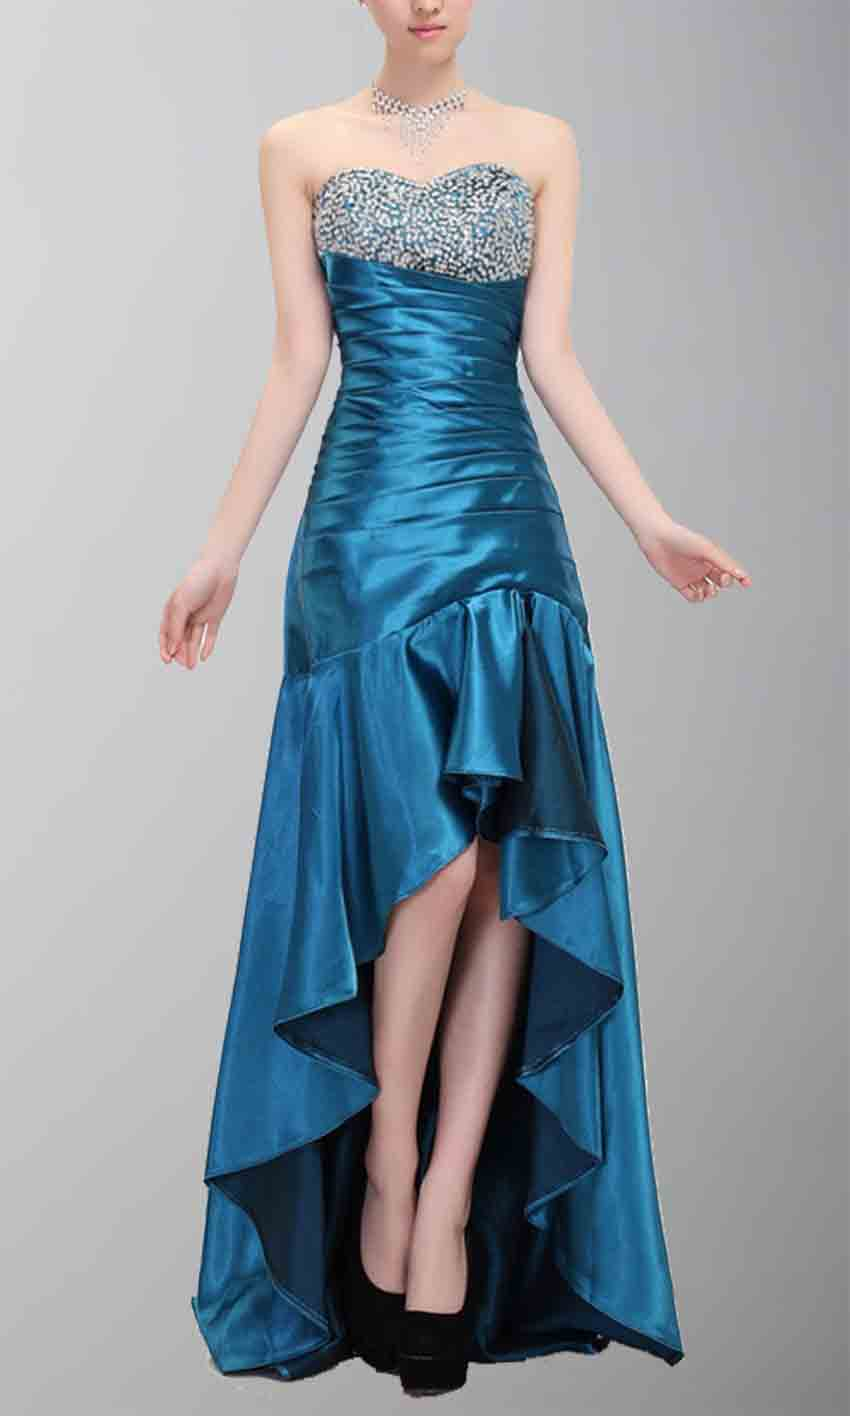 Strapless Beaded Blue High Low Prom Dresses KSP112 [KSP112] - £103.00 : Cheap Prom Dresses Uk, Bridesmaid Dresses, 2014 Prom & Evening Dresses, Look for cheap elegant prom dresses 2014, cocktail gowns, or dresses for special occasions? kissprom.co.uk offers various bridesmaid dresses, evening dress, free shipping to UK etc.